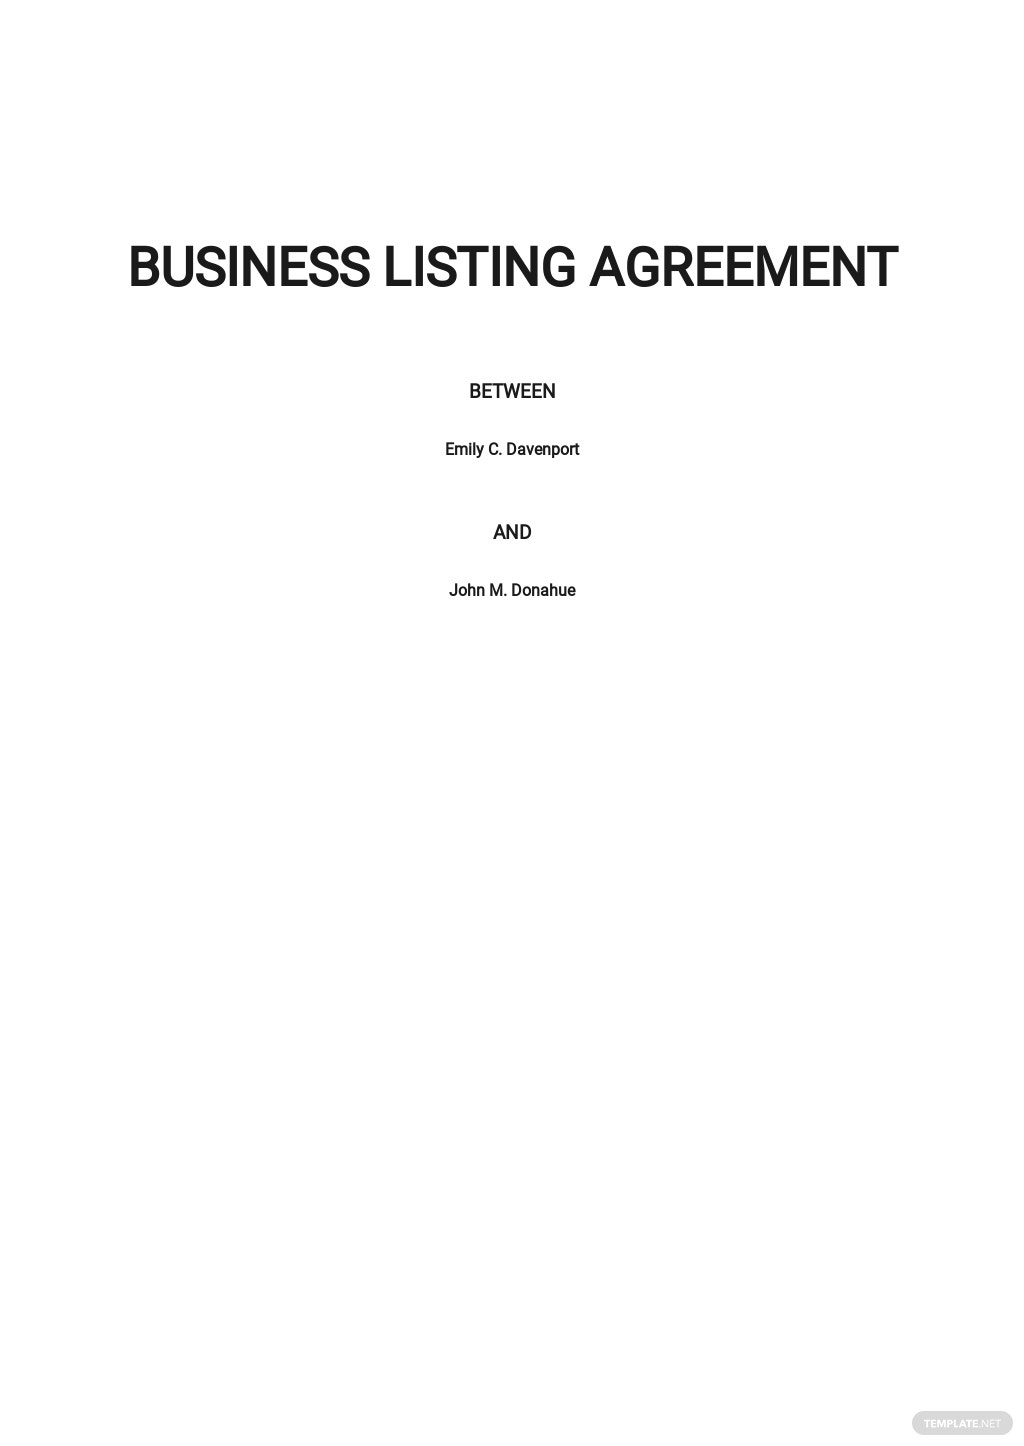 Business Listing Agreement Template .jpe